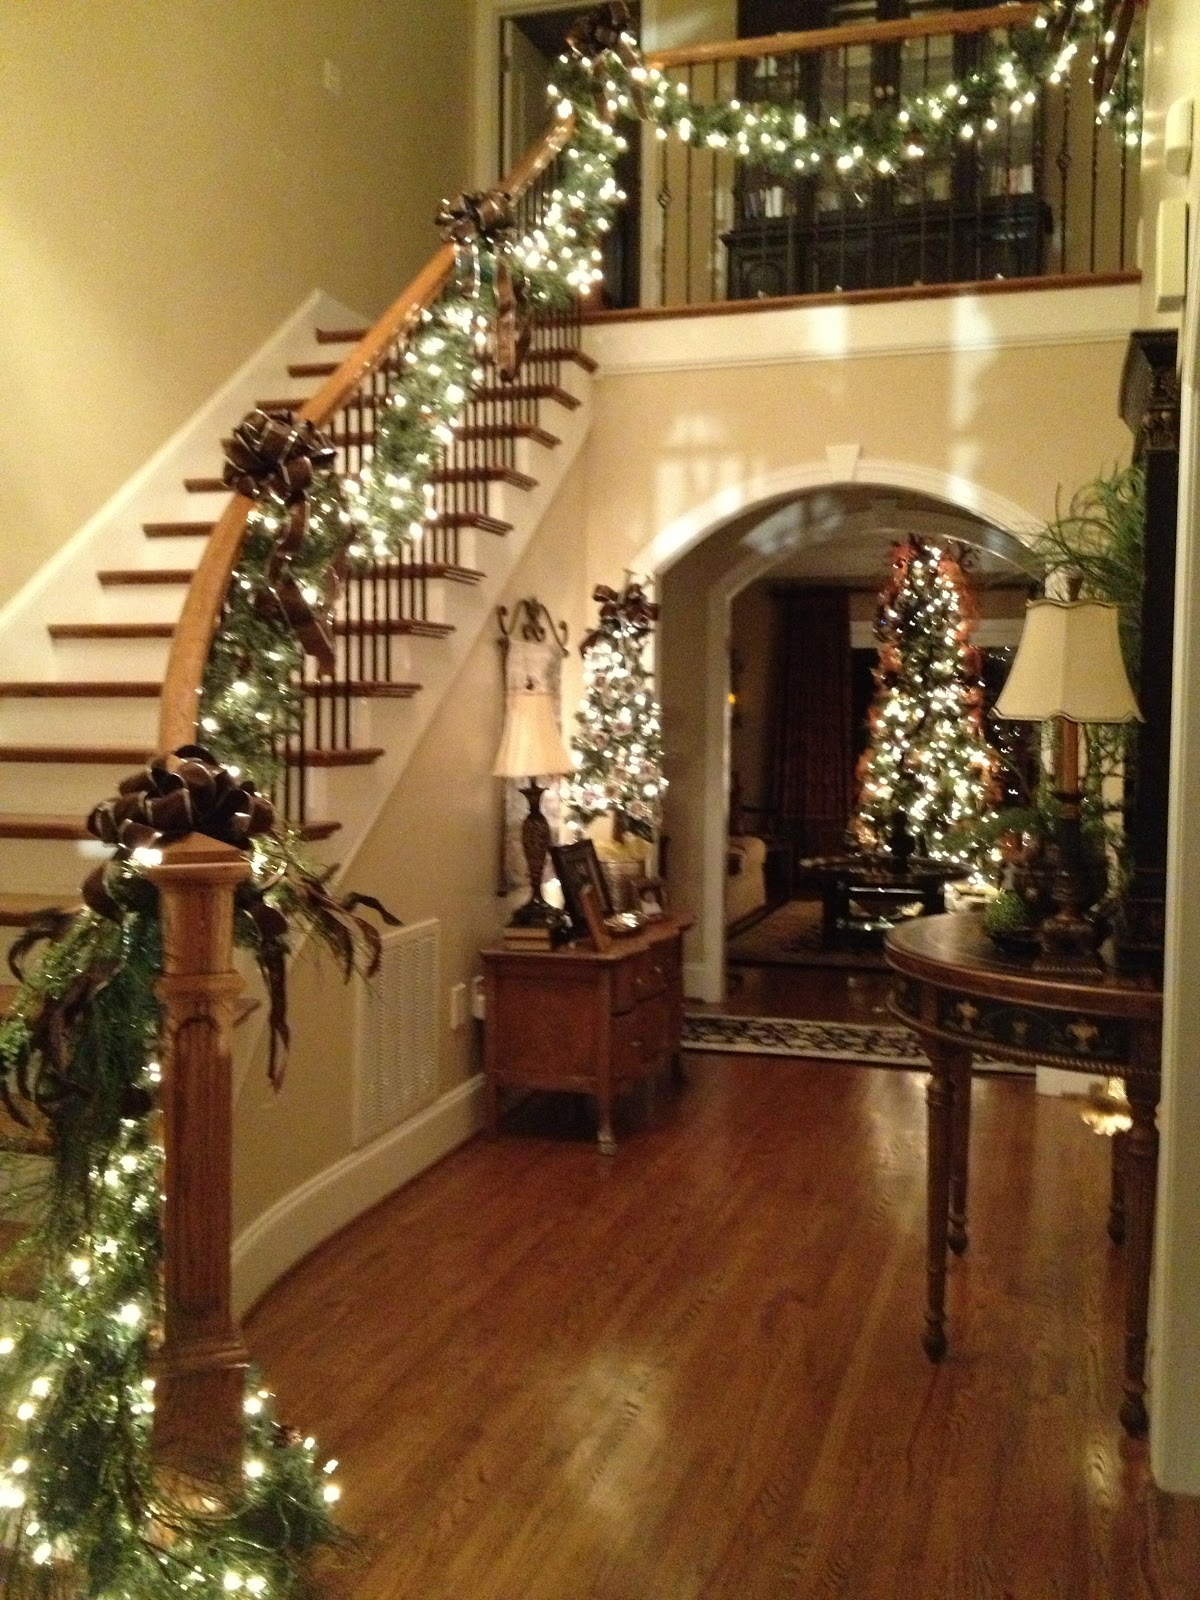 always decorate my stairs with lighted garland because it looks